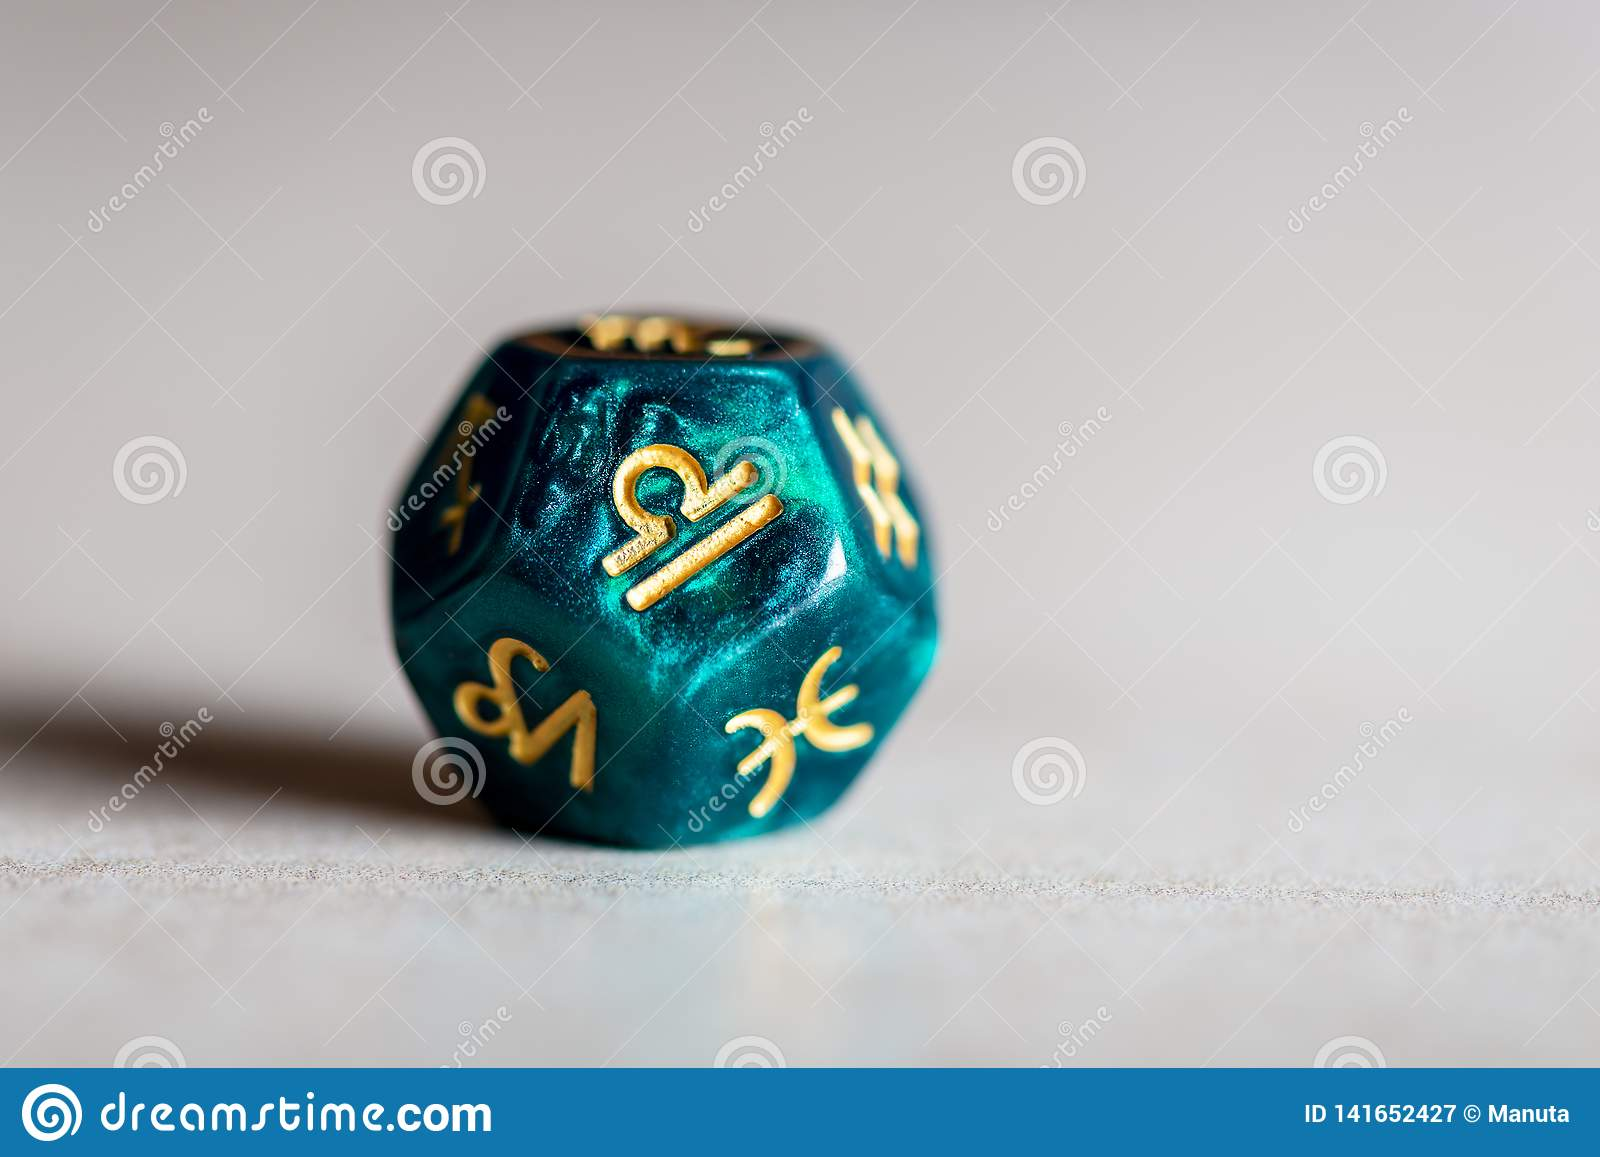 Astrology Dice with zodiac symbol of Libra